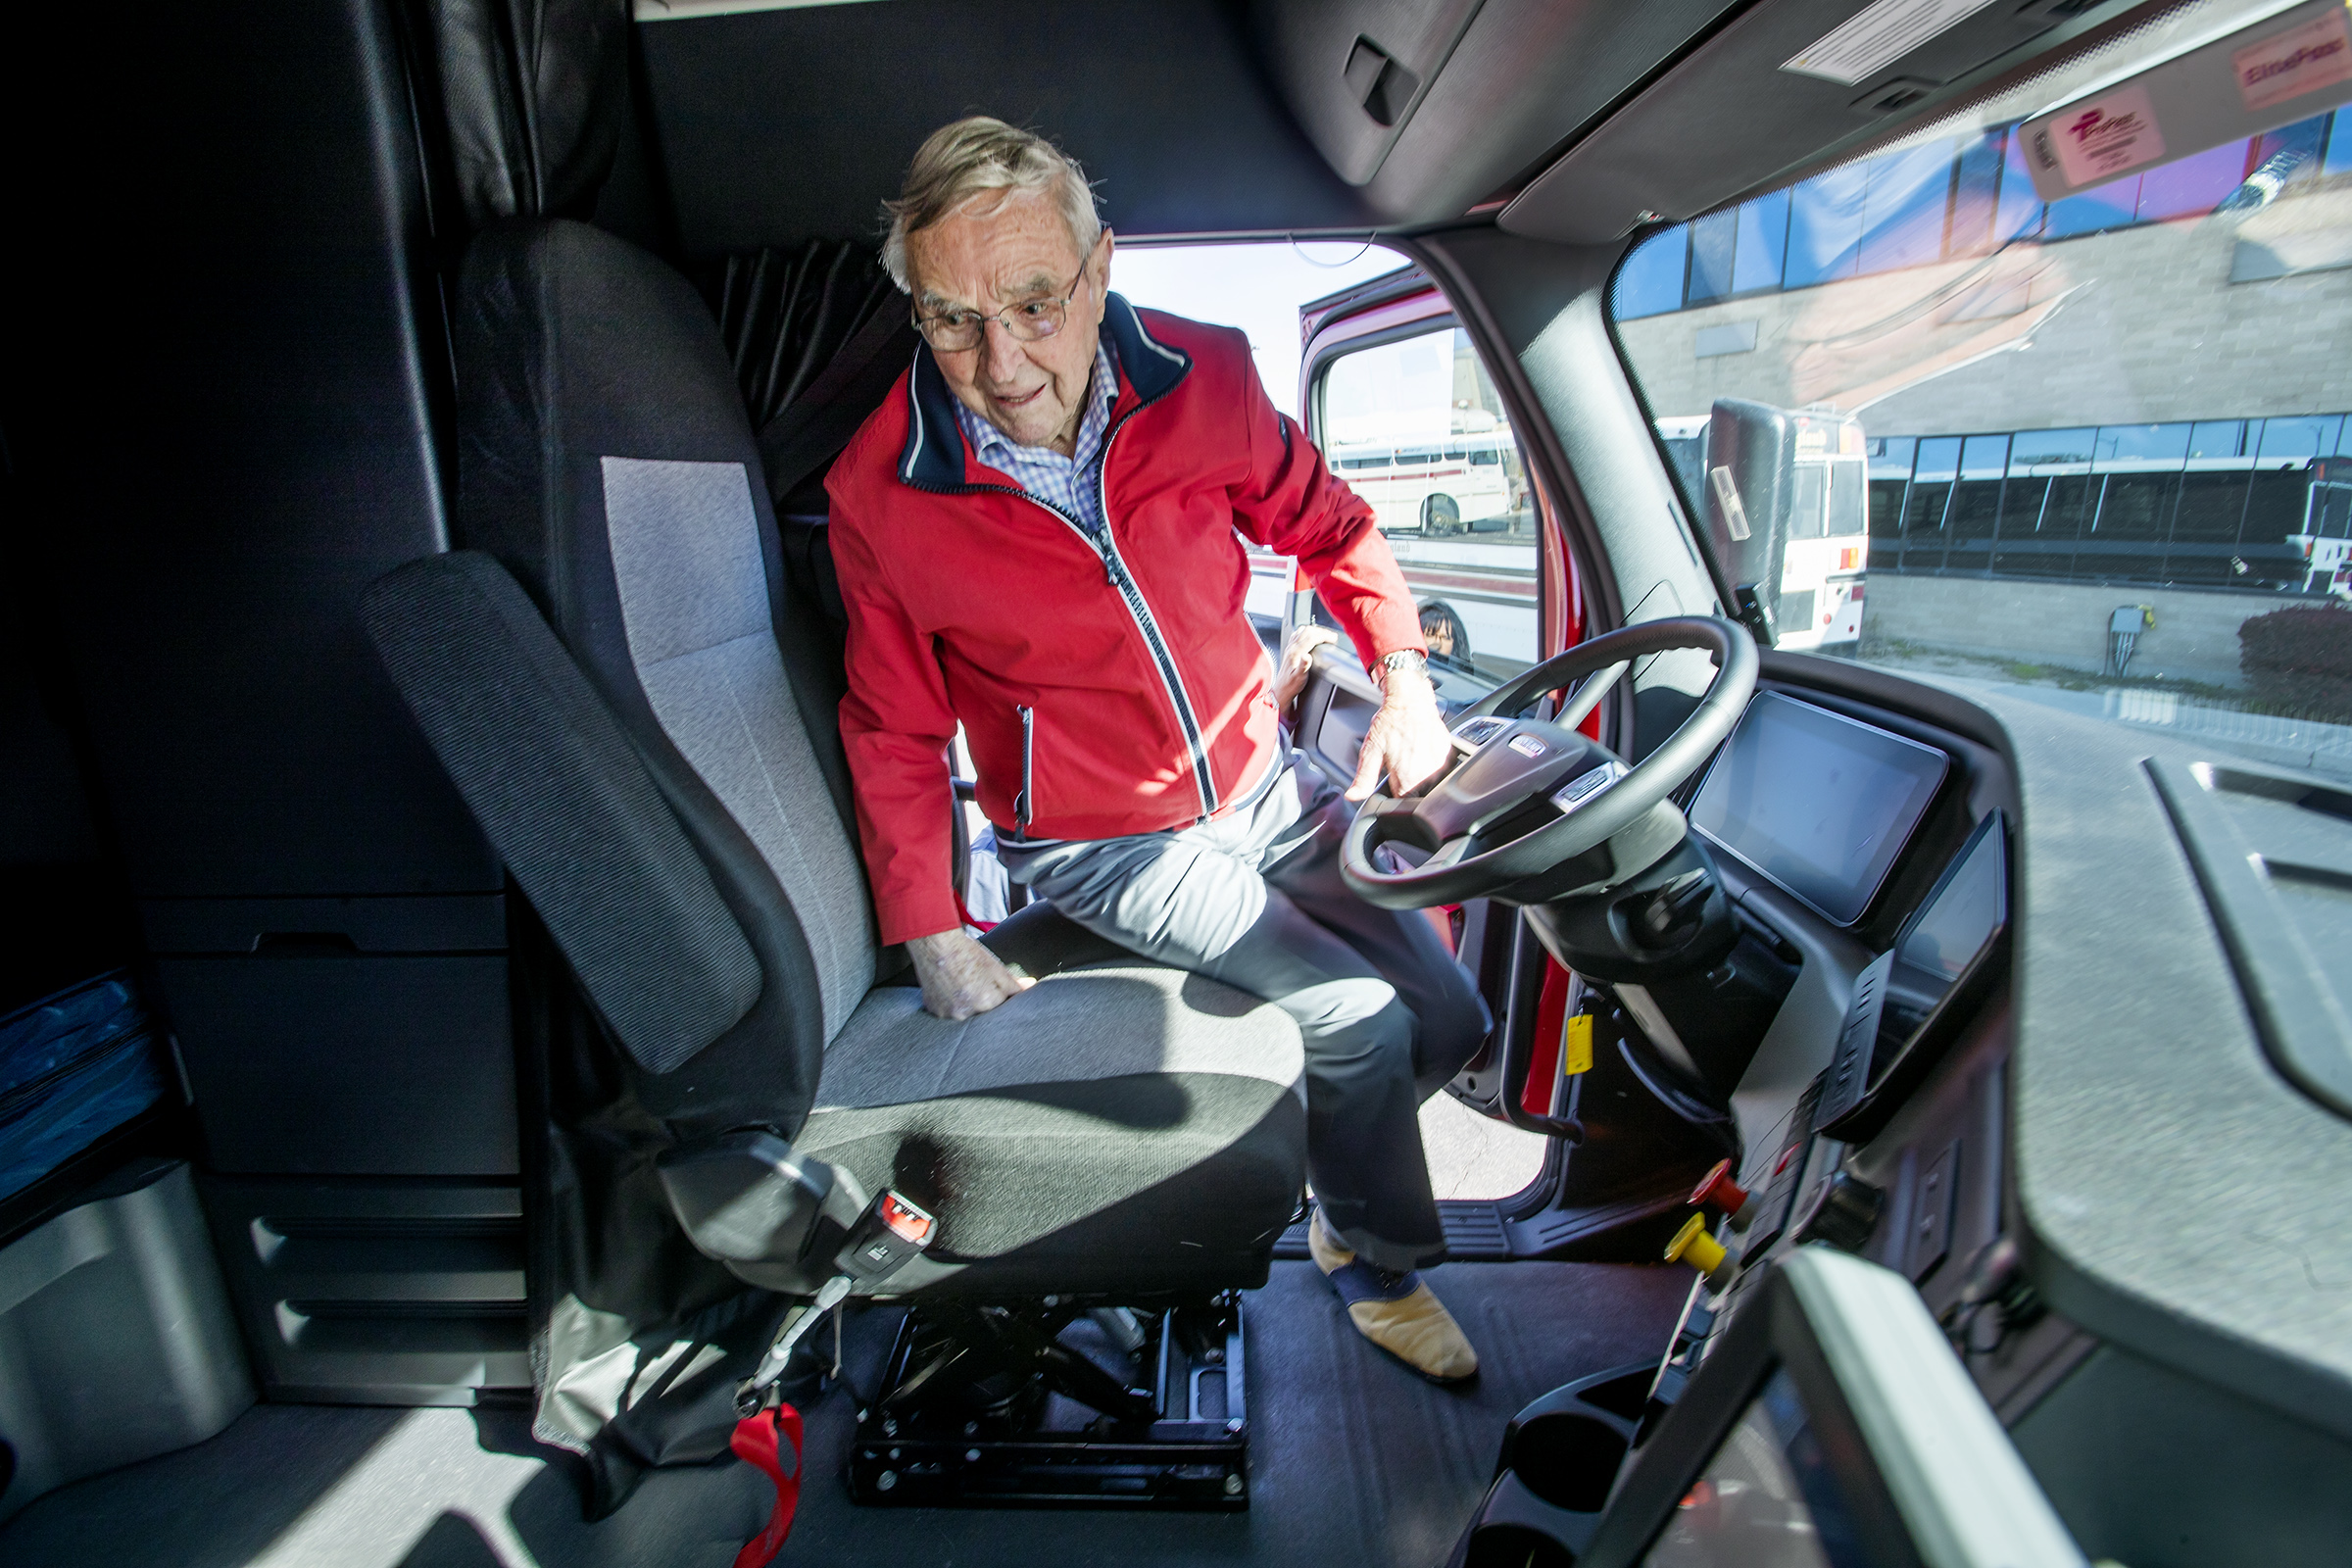 Gene England, president emeritus of C.R.England, climbs into the cab of a new truck at the company's headquarters in West Valley City on Monday, Oct. 14, 2019. England will be 100 on Oct. 24, 2019.